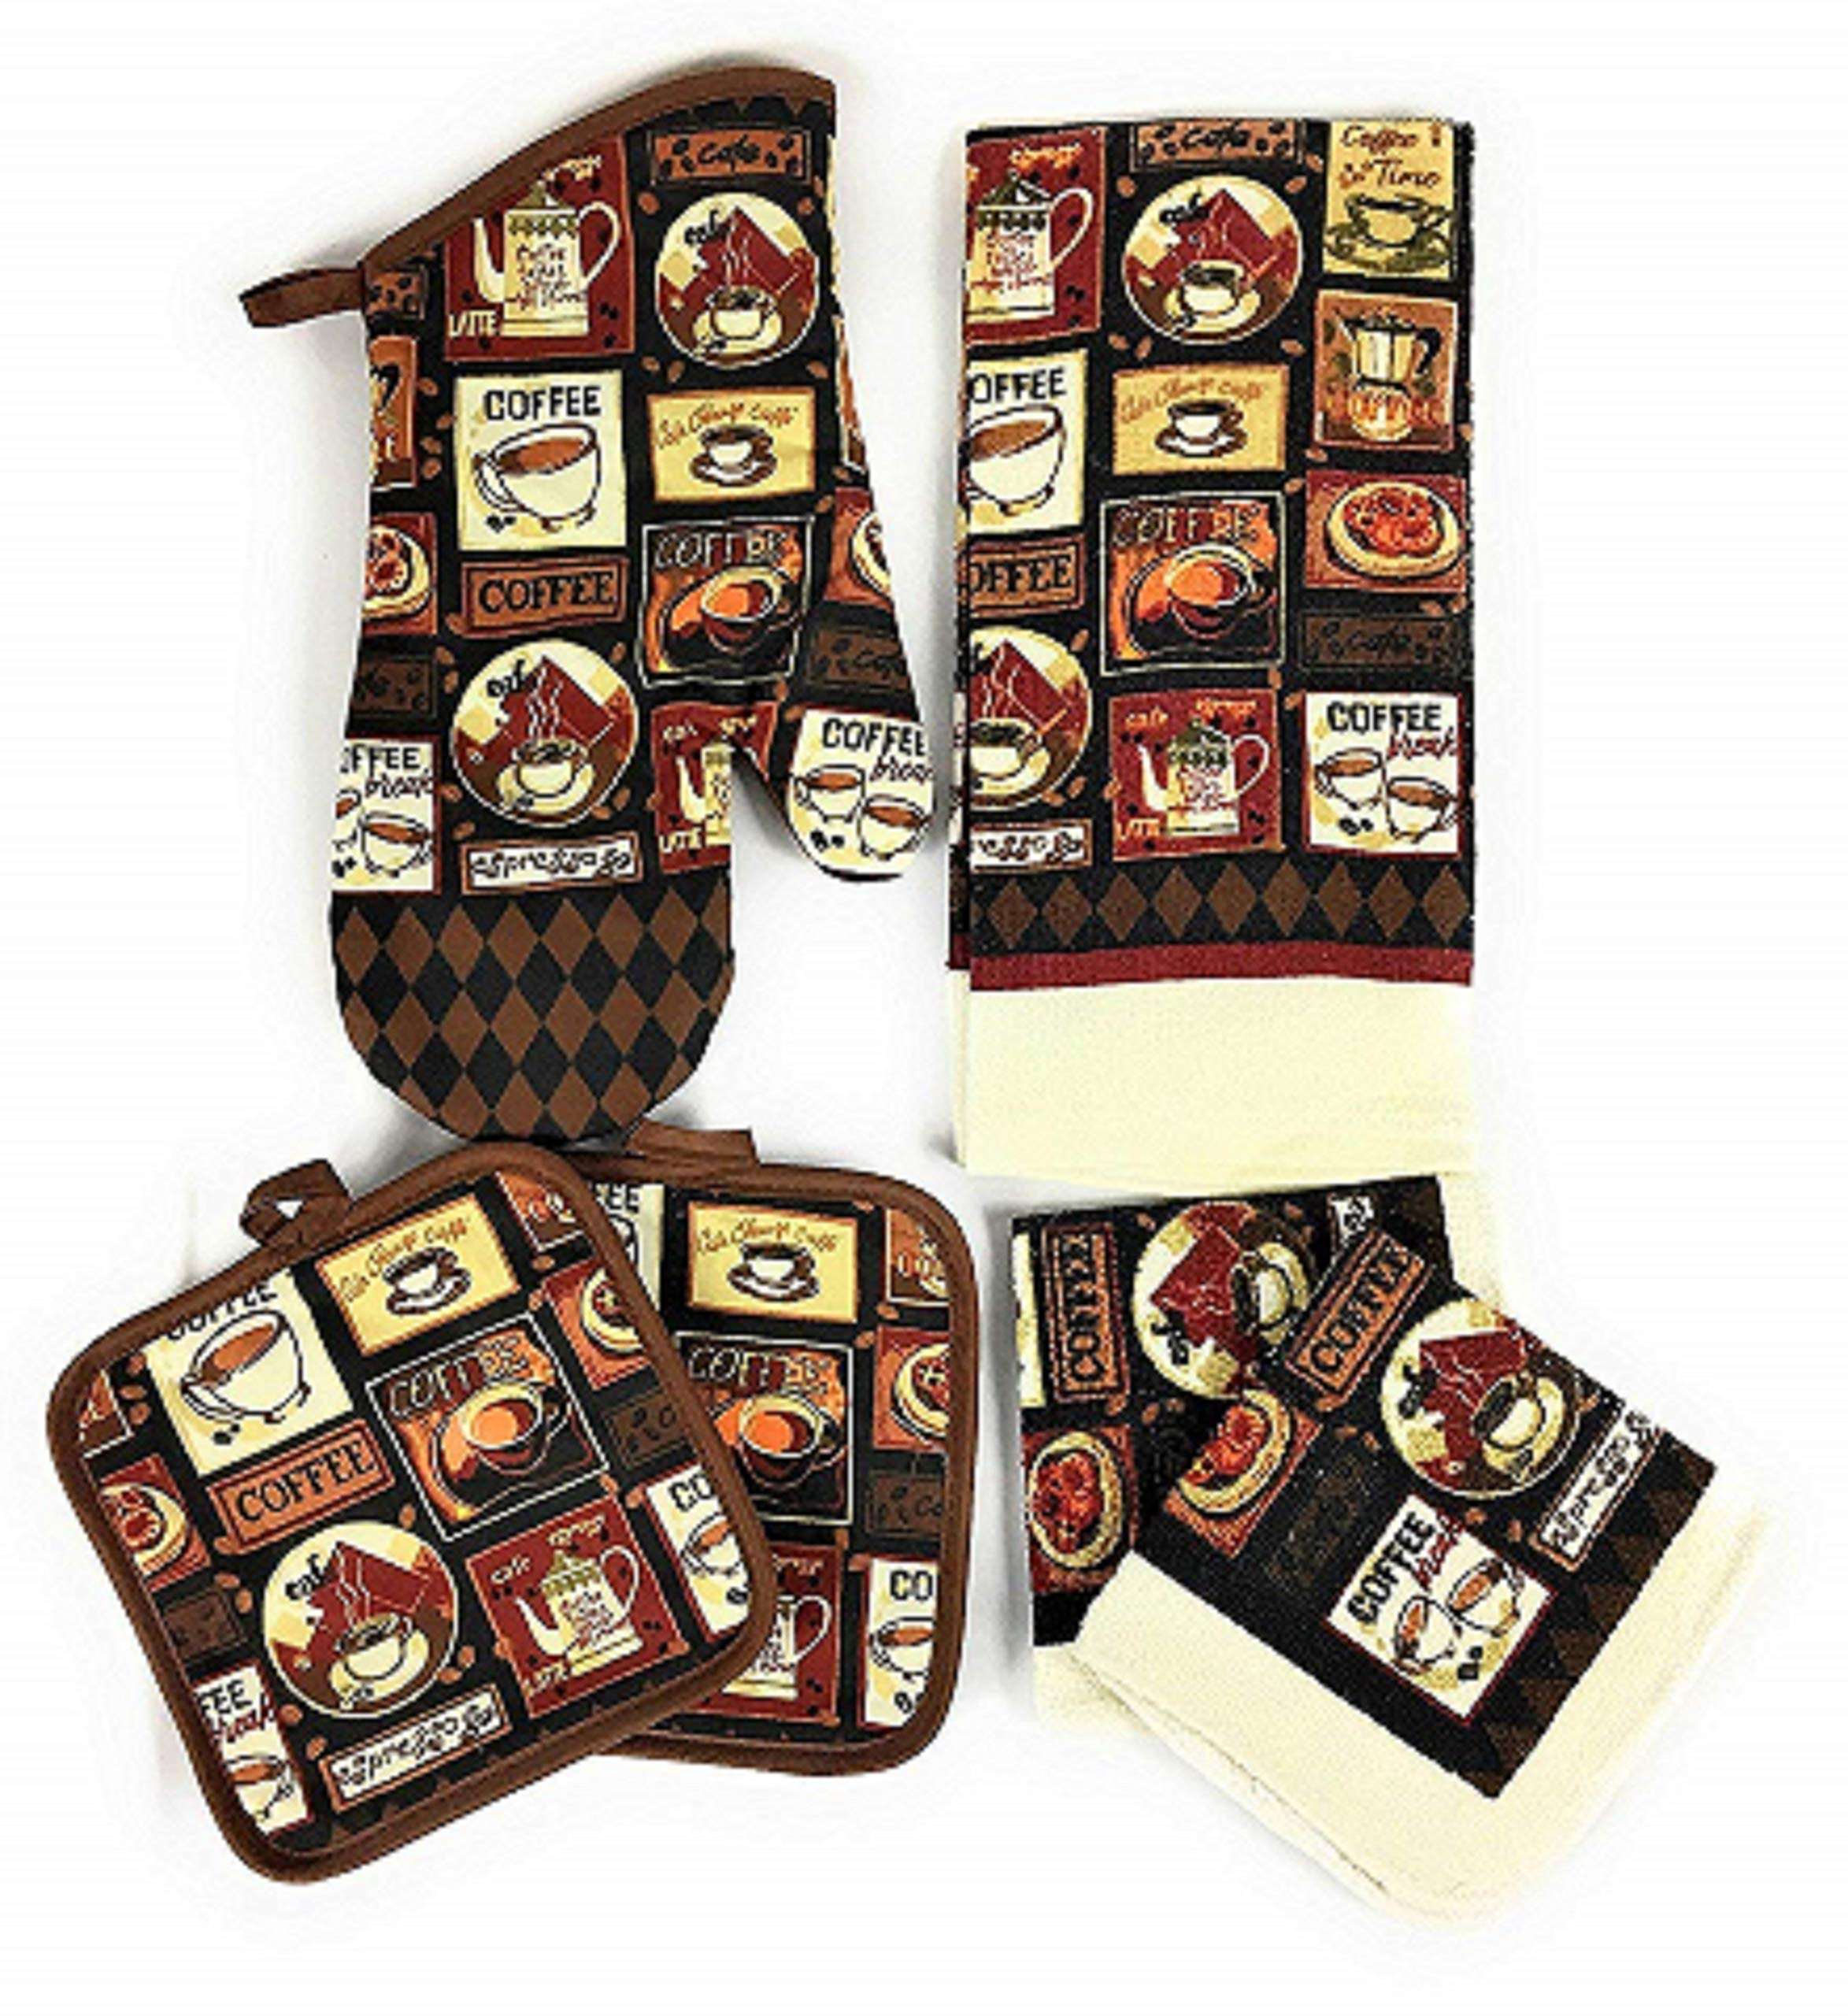 Kitchen Linens - Coffee Cafe - Towel Linen Set of 6 Pieces Coffee Themed Design - Kitchen Towel 2 Potholders 2 Scrubber Dishcloths 1 Oven Mitt - Linen Coffee Set - Oven Mitts - Kitchen Decor